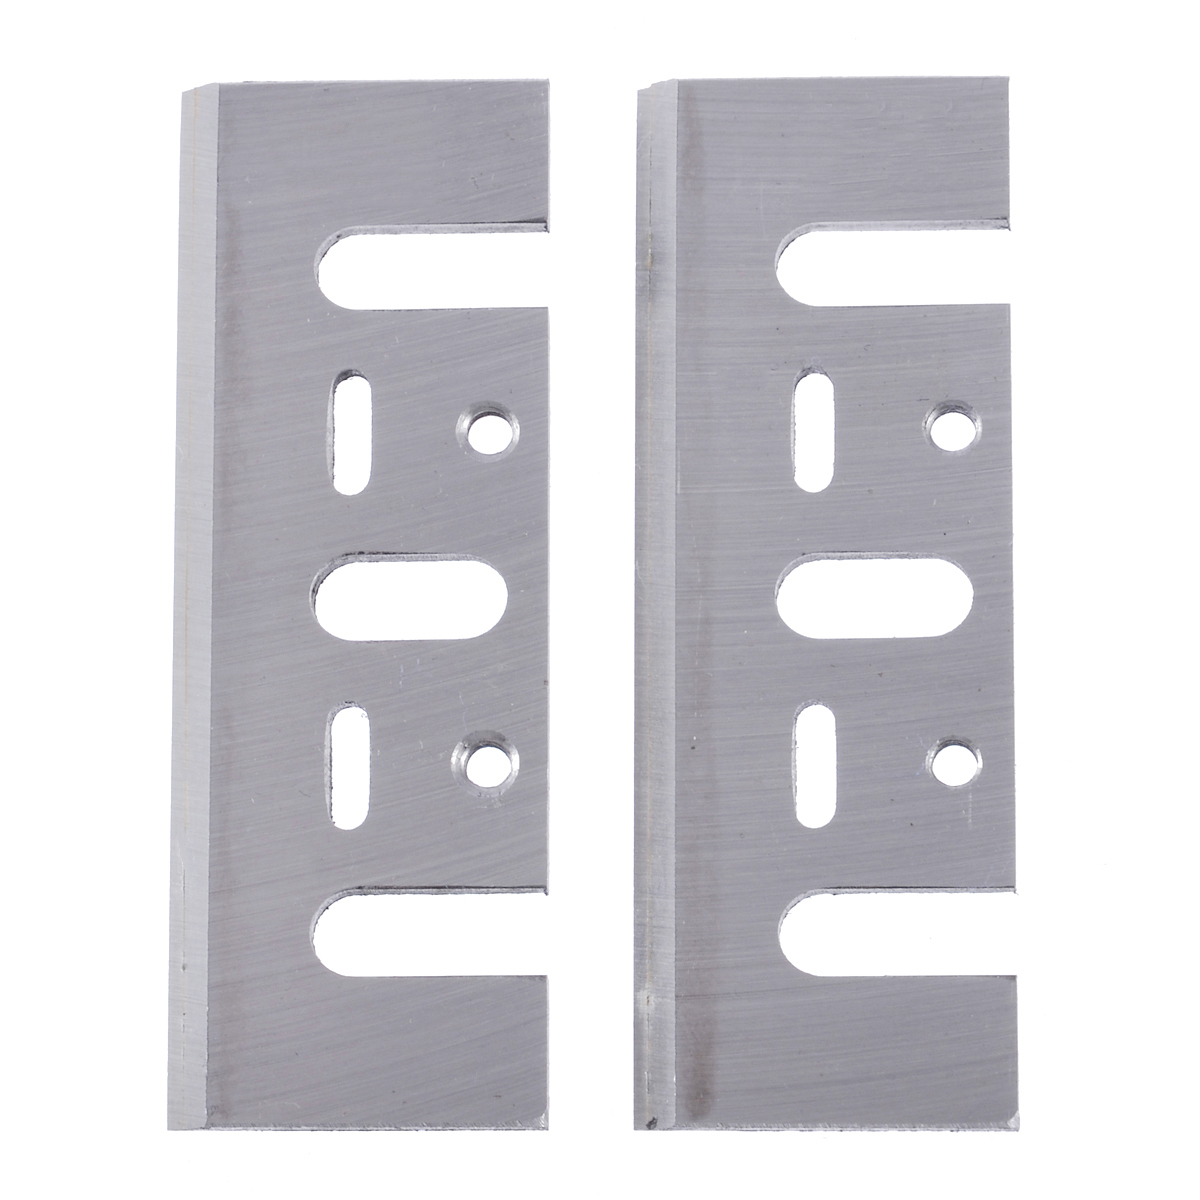 2pcs HSS Craving Planer Blade Mini Electric Wood Cutting Planer Blades Replacement Electric Planer Handcraft Tool Accessories